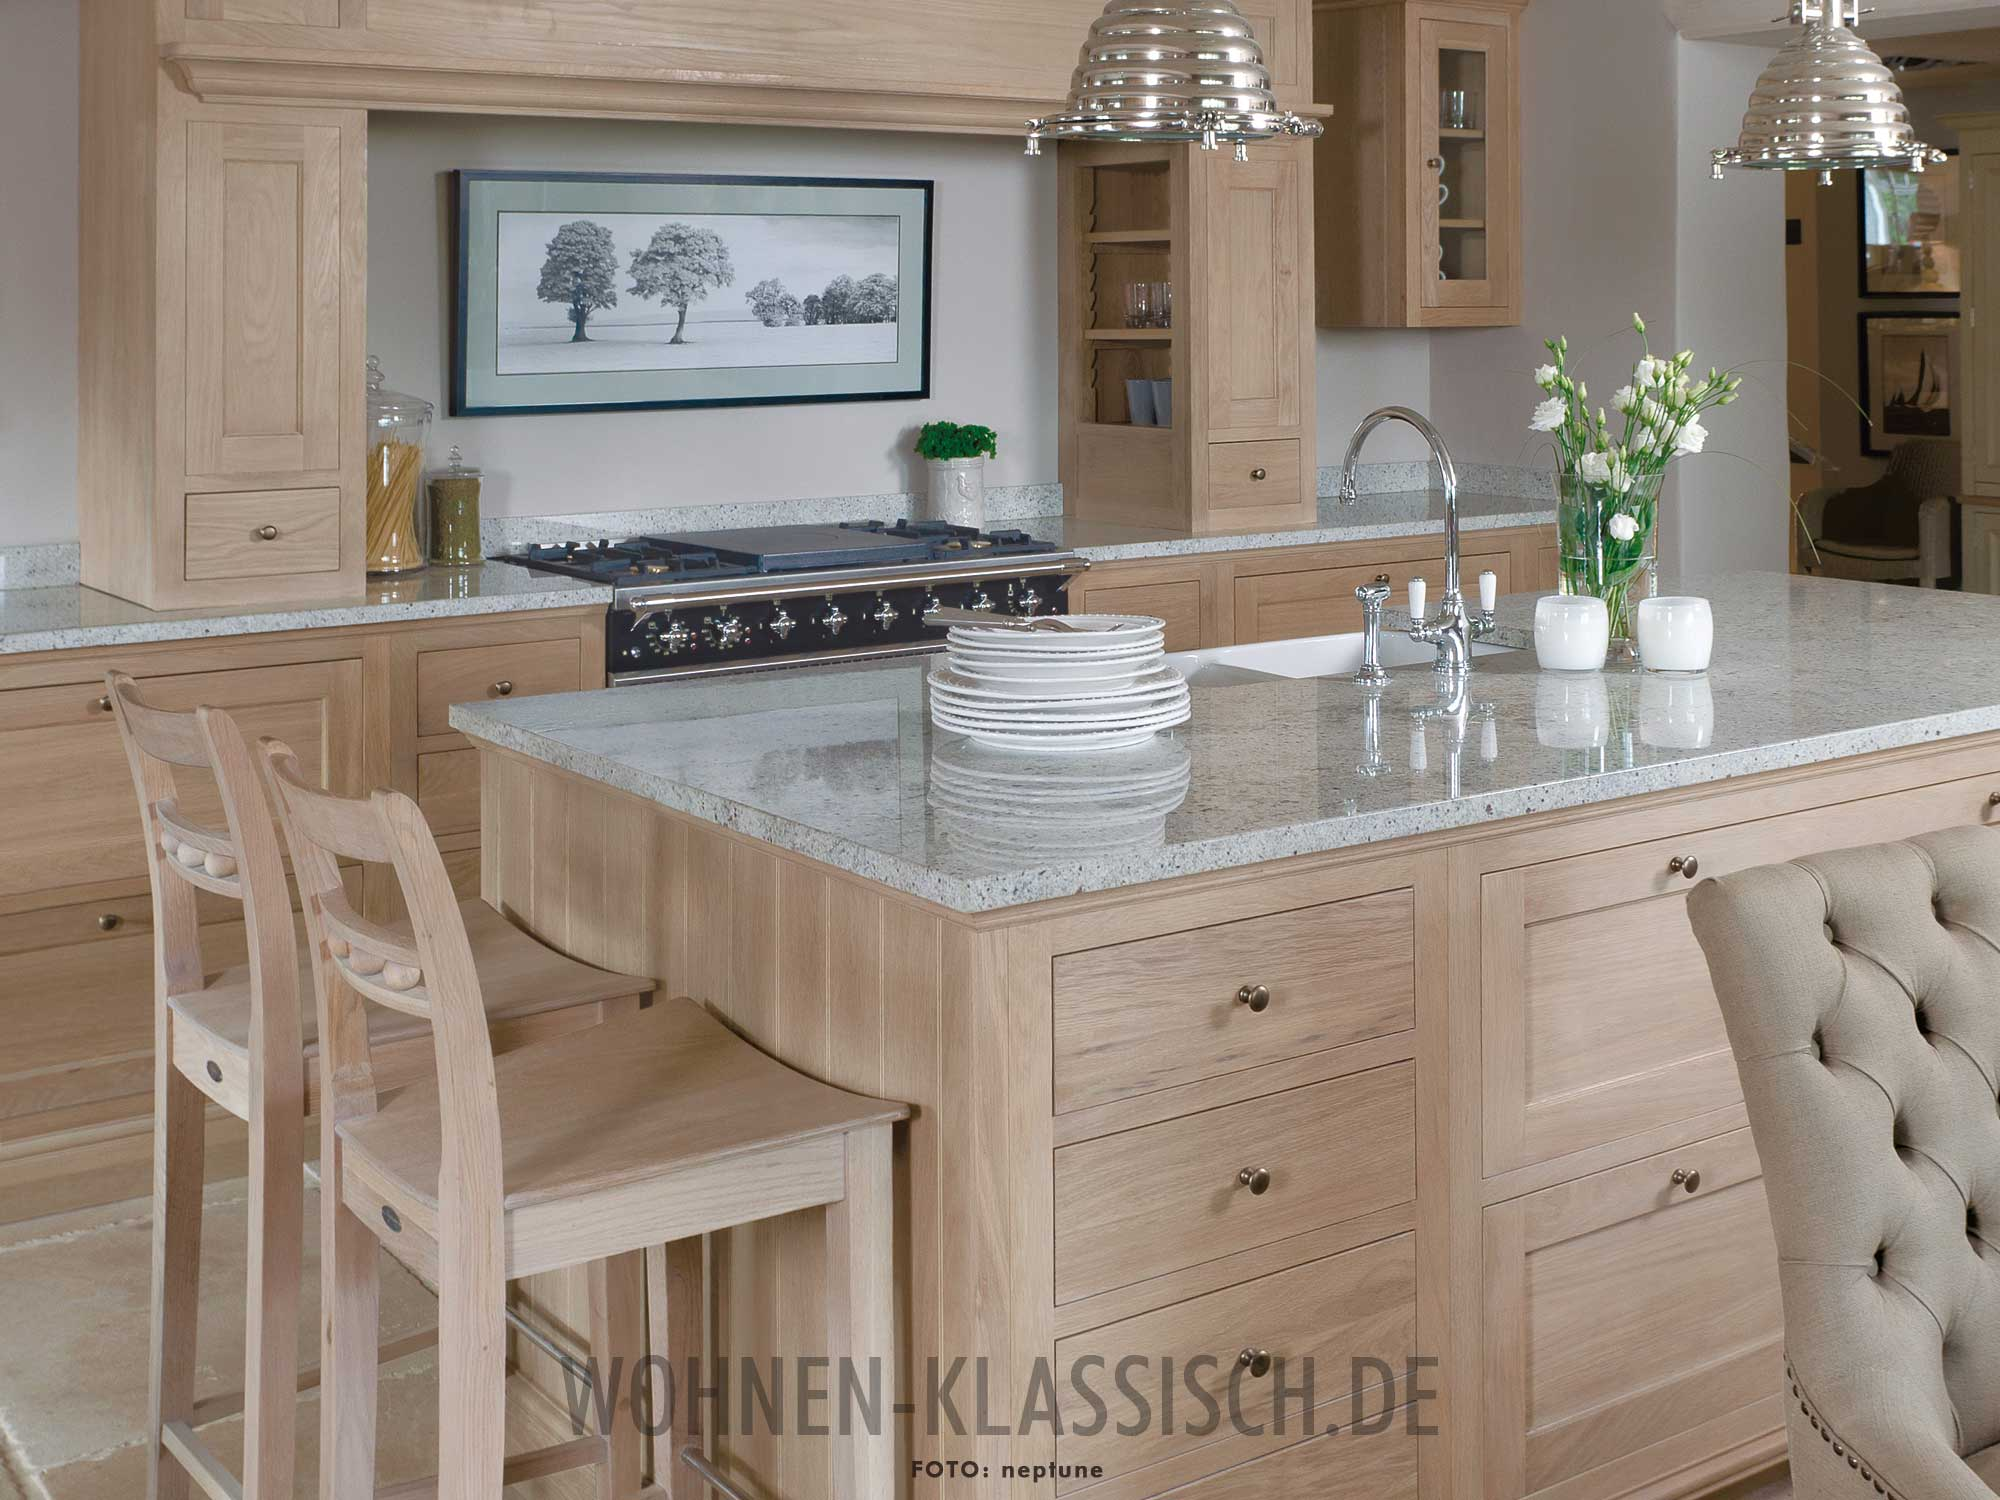 k che im naturlook klassisch wohnen. Black Bedroom Furniture Sets. Home Design Ideas